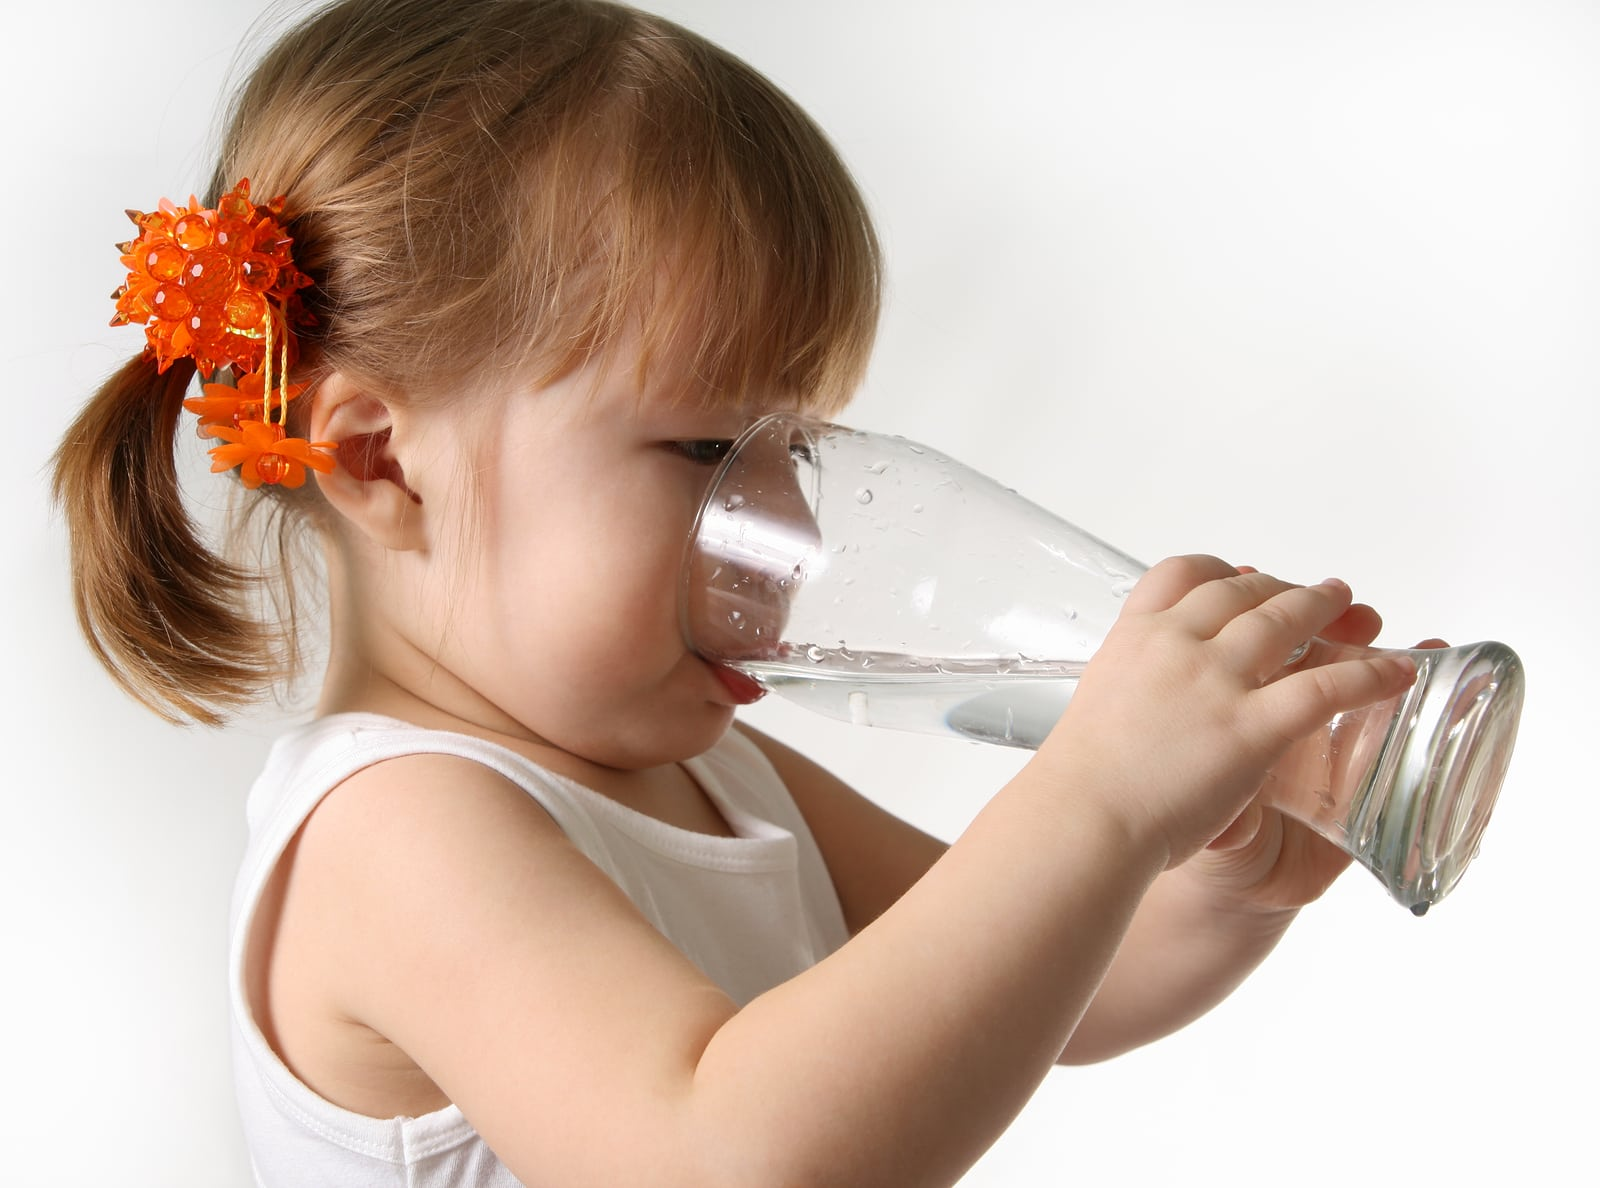 Fluoridated water is beneficial to the dental health of children